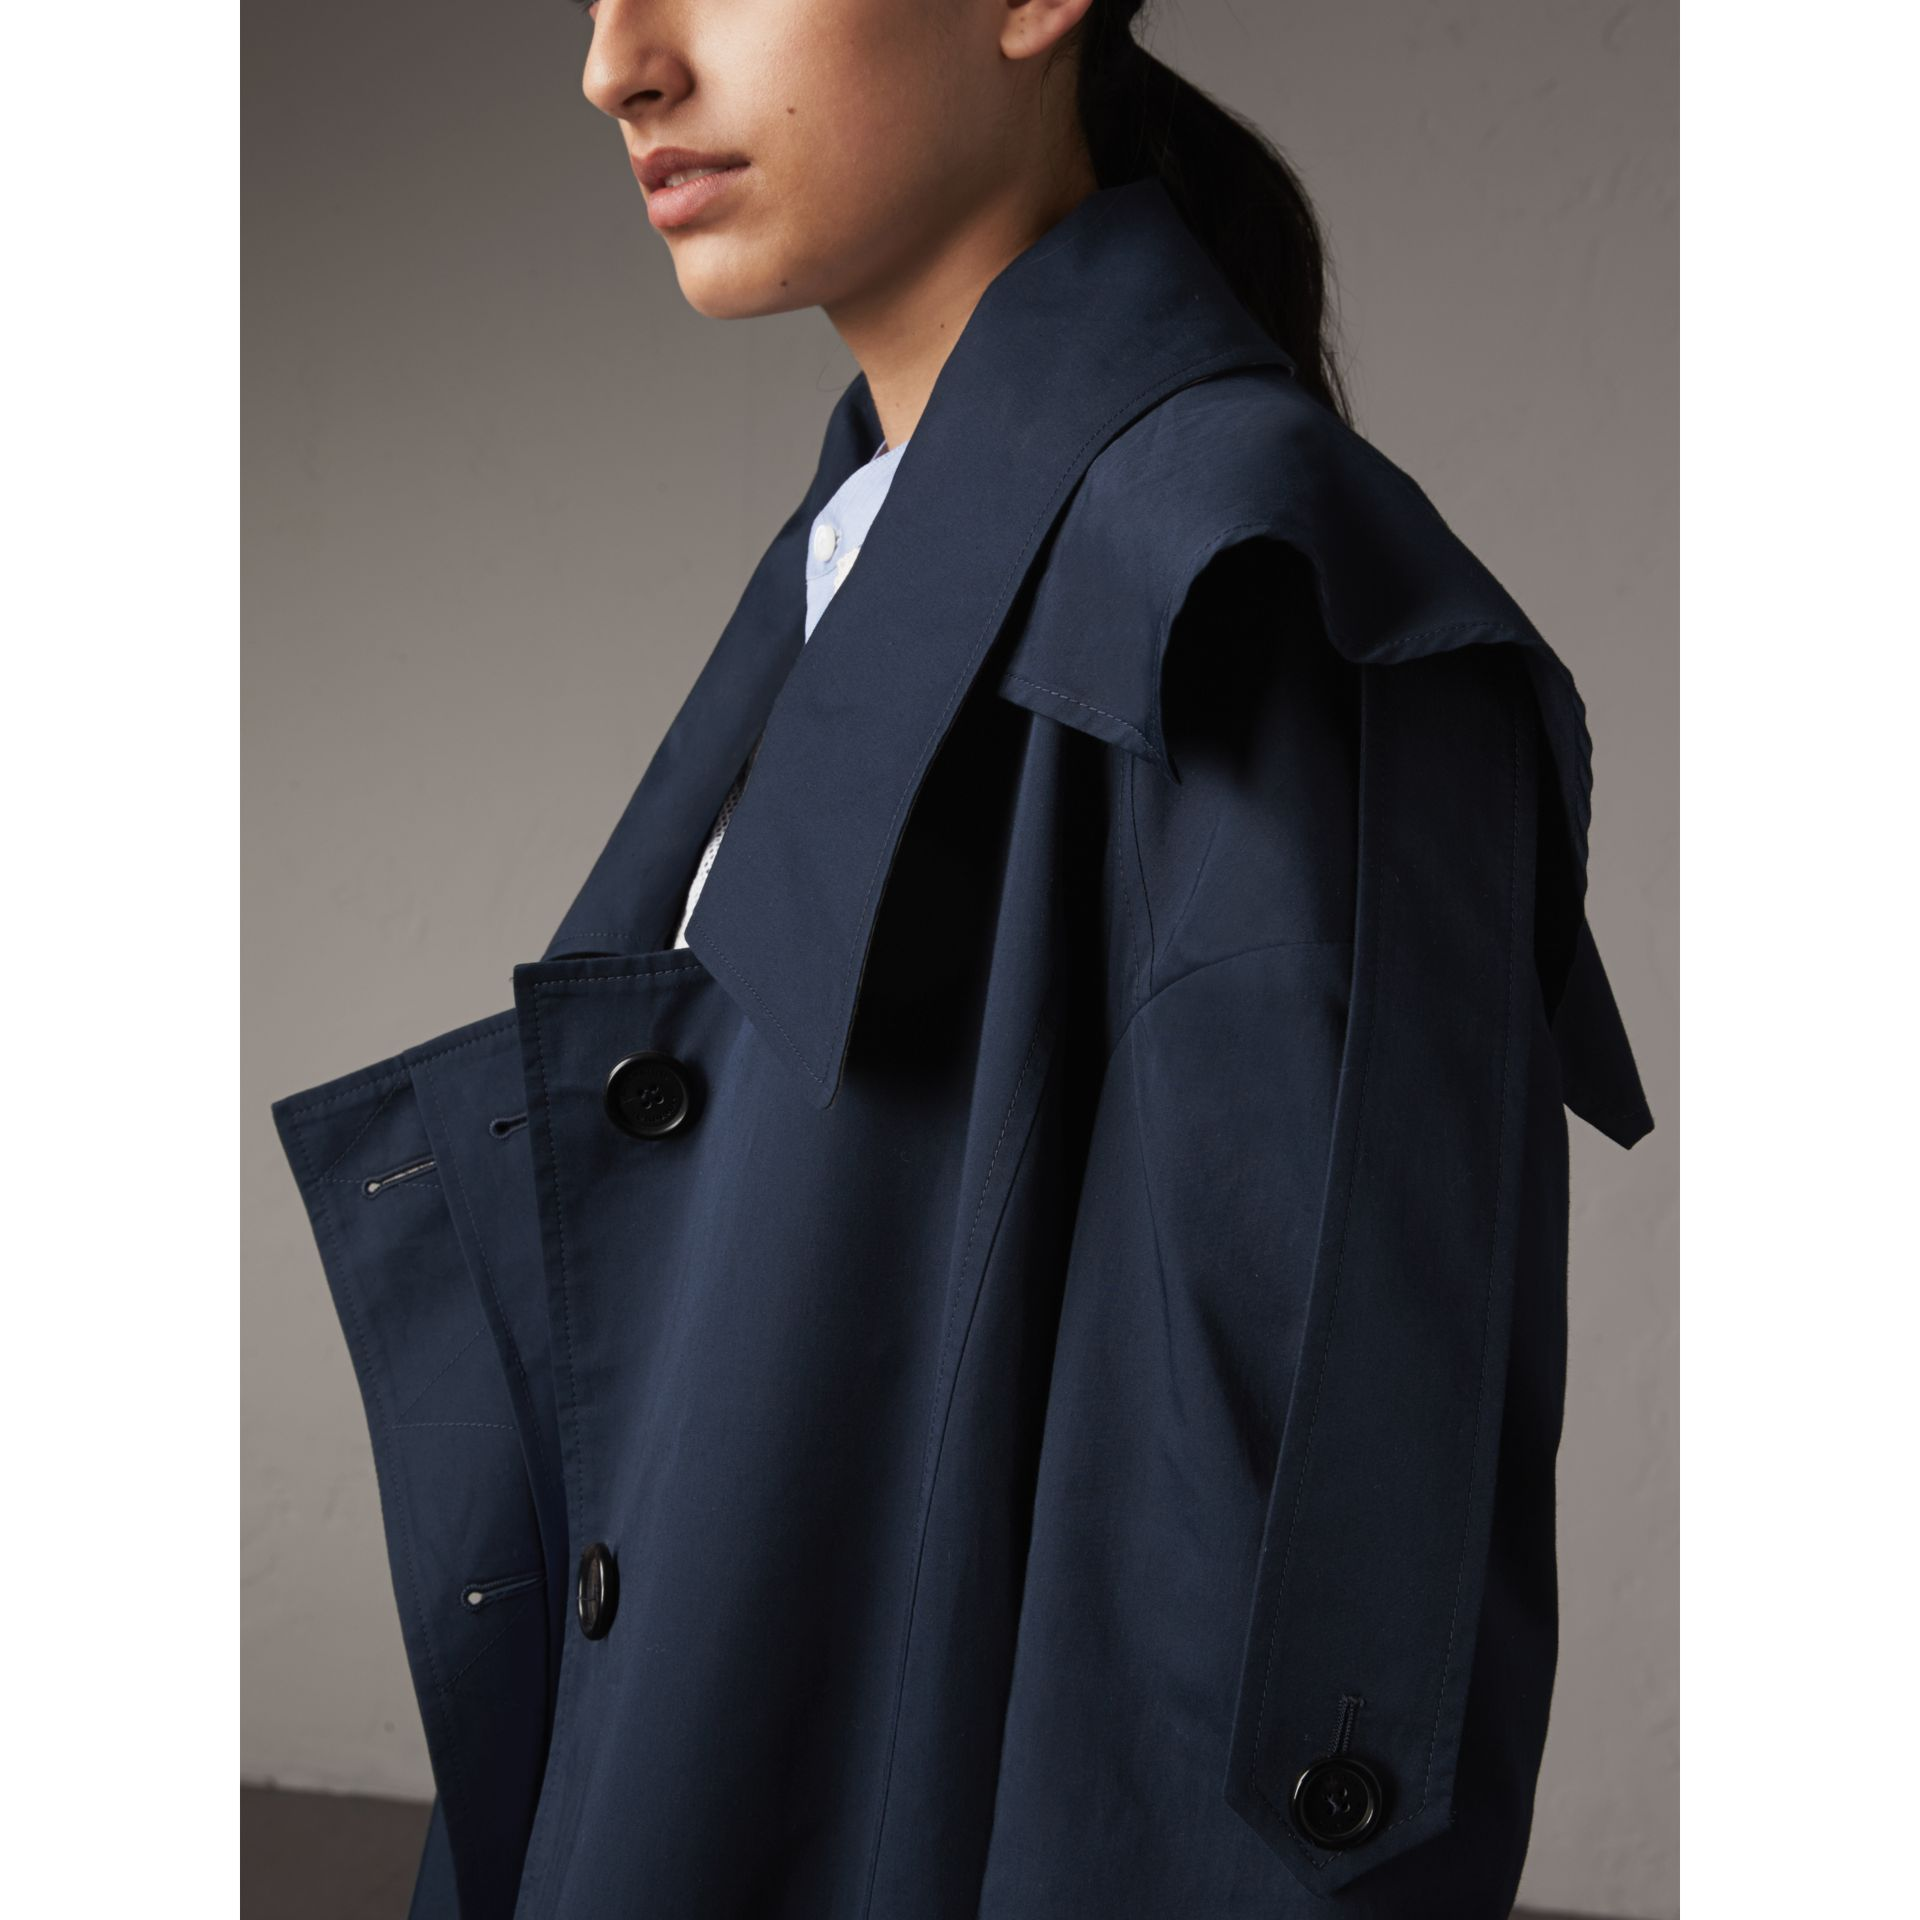 Cotton Asymmetric Trench Coat in Navy - Women | Burberry United States - gallery image 2